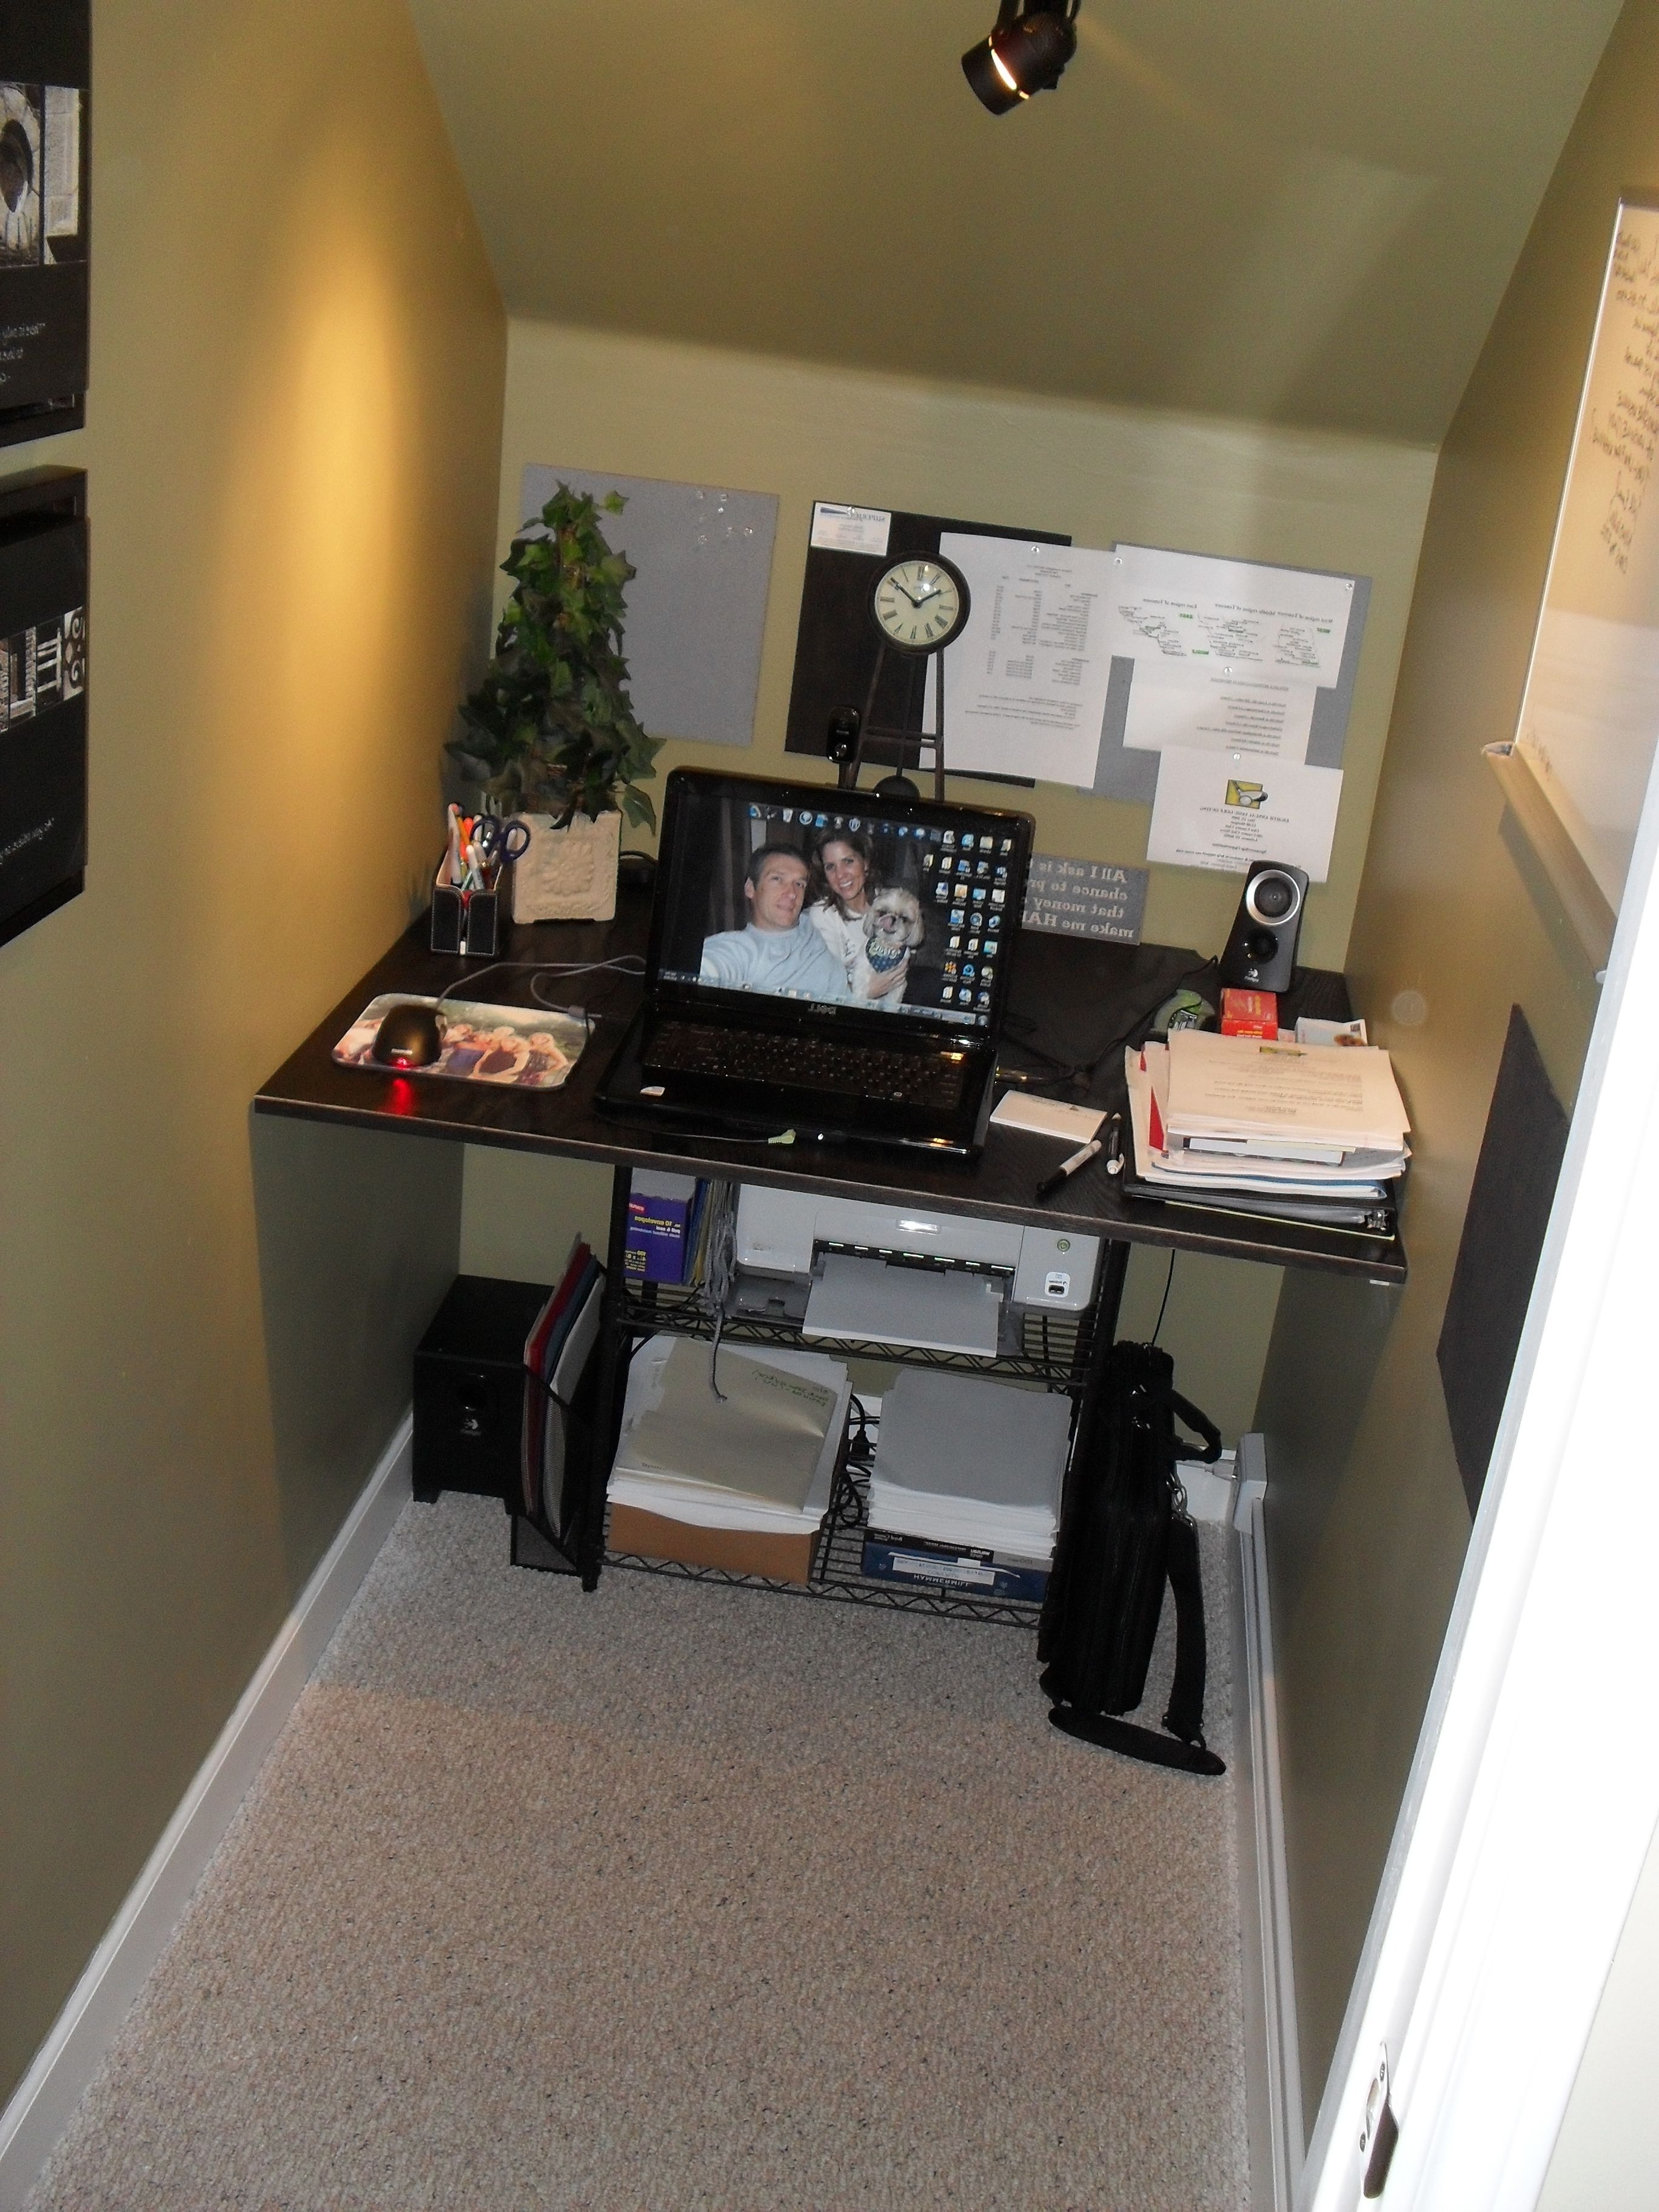 Closet Under Stairs Converted To Office Space :) Great Idea If You Within Most Recent Computer Desks Under Stairs (View 4 of 20)